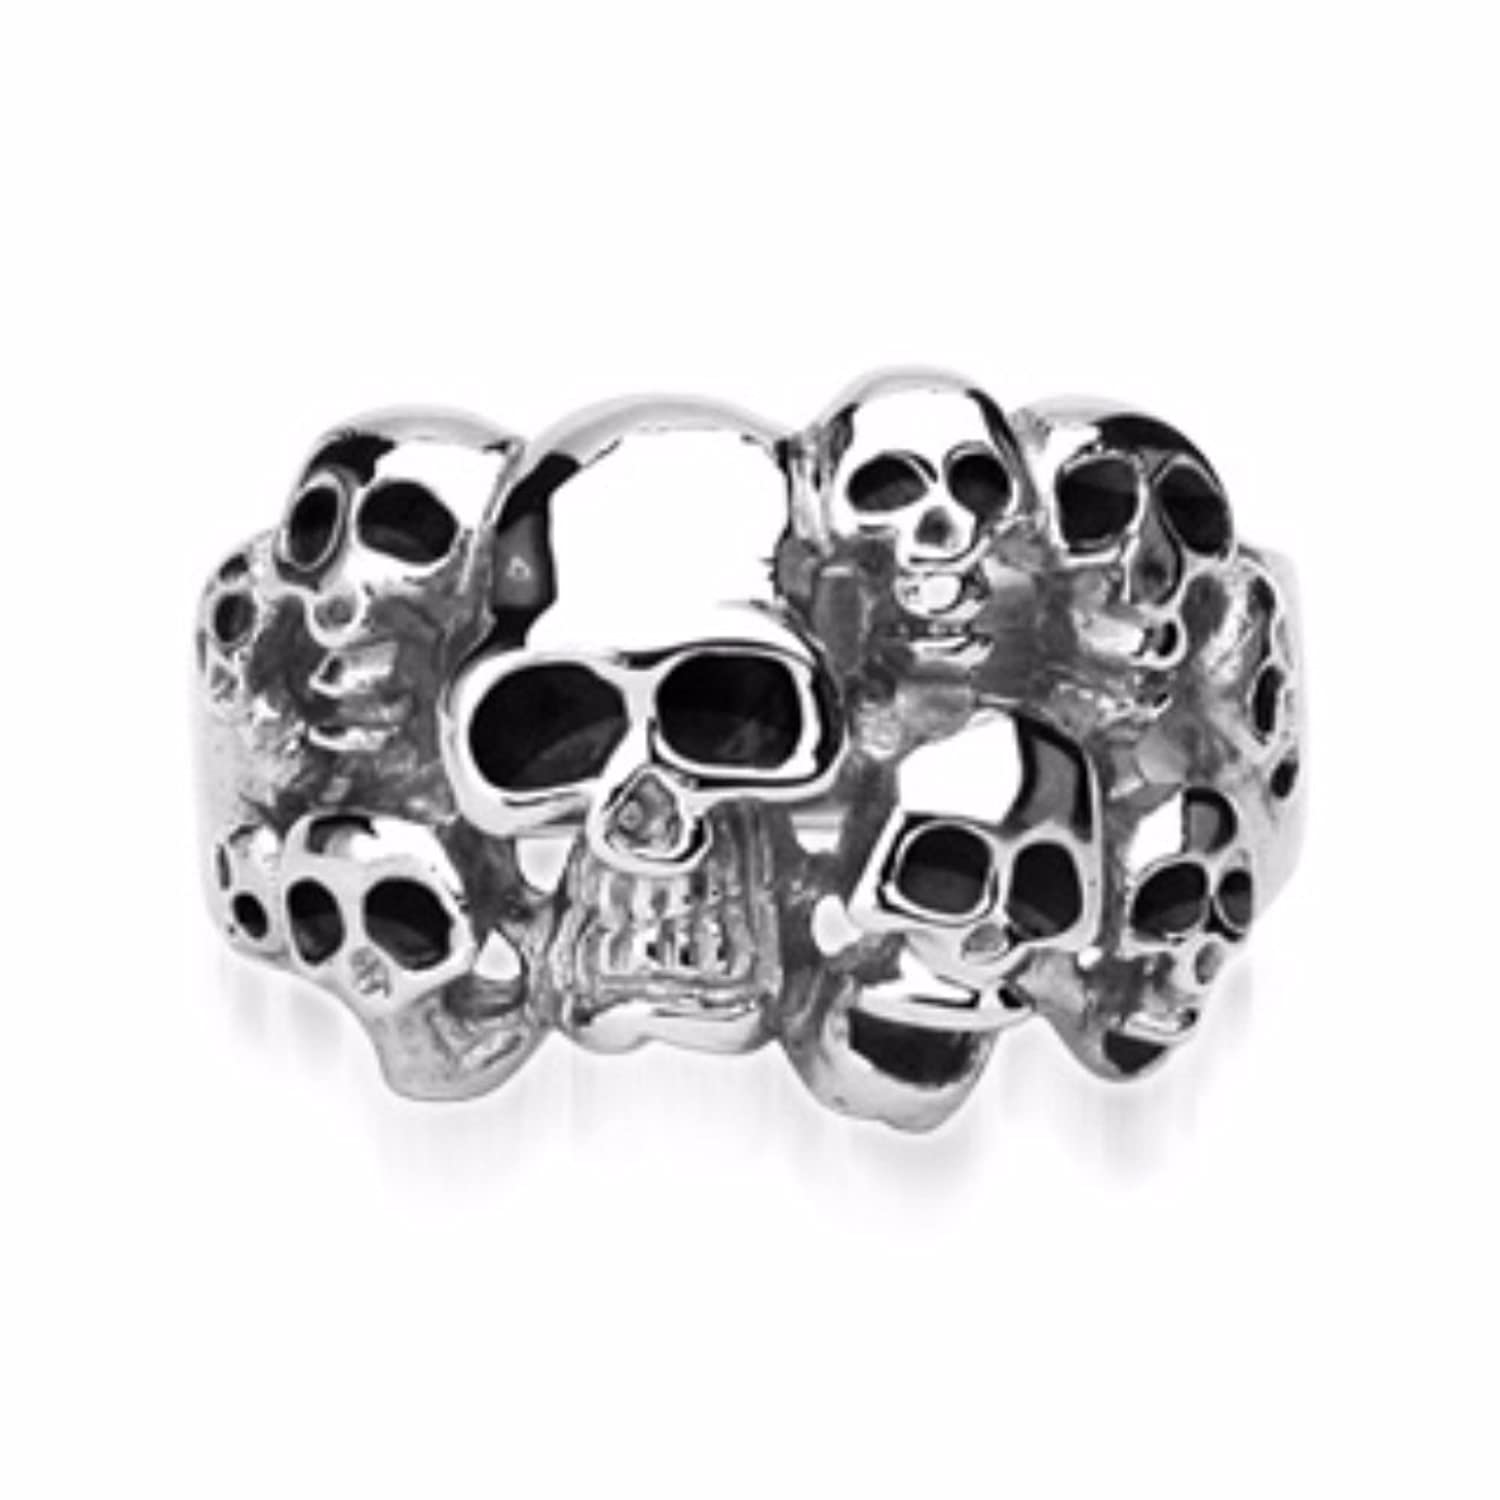 10 Skulls Ring 316L Surgical Stainless Steel